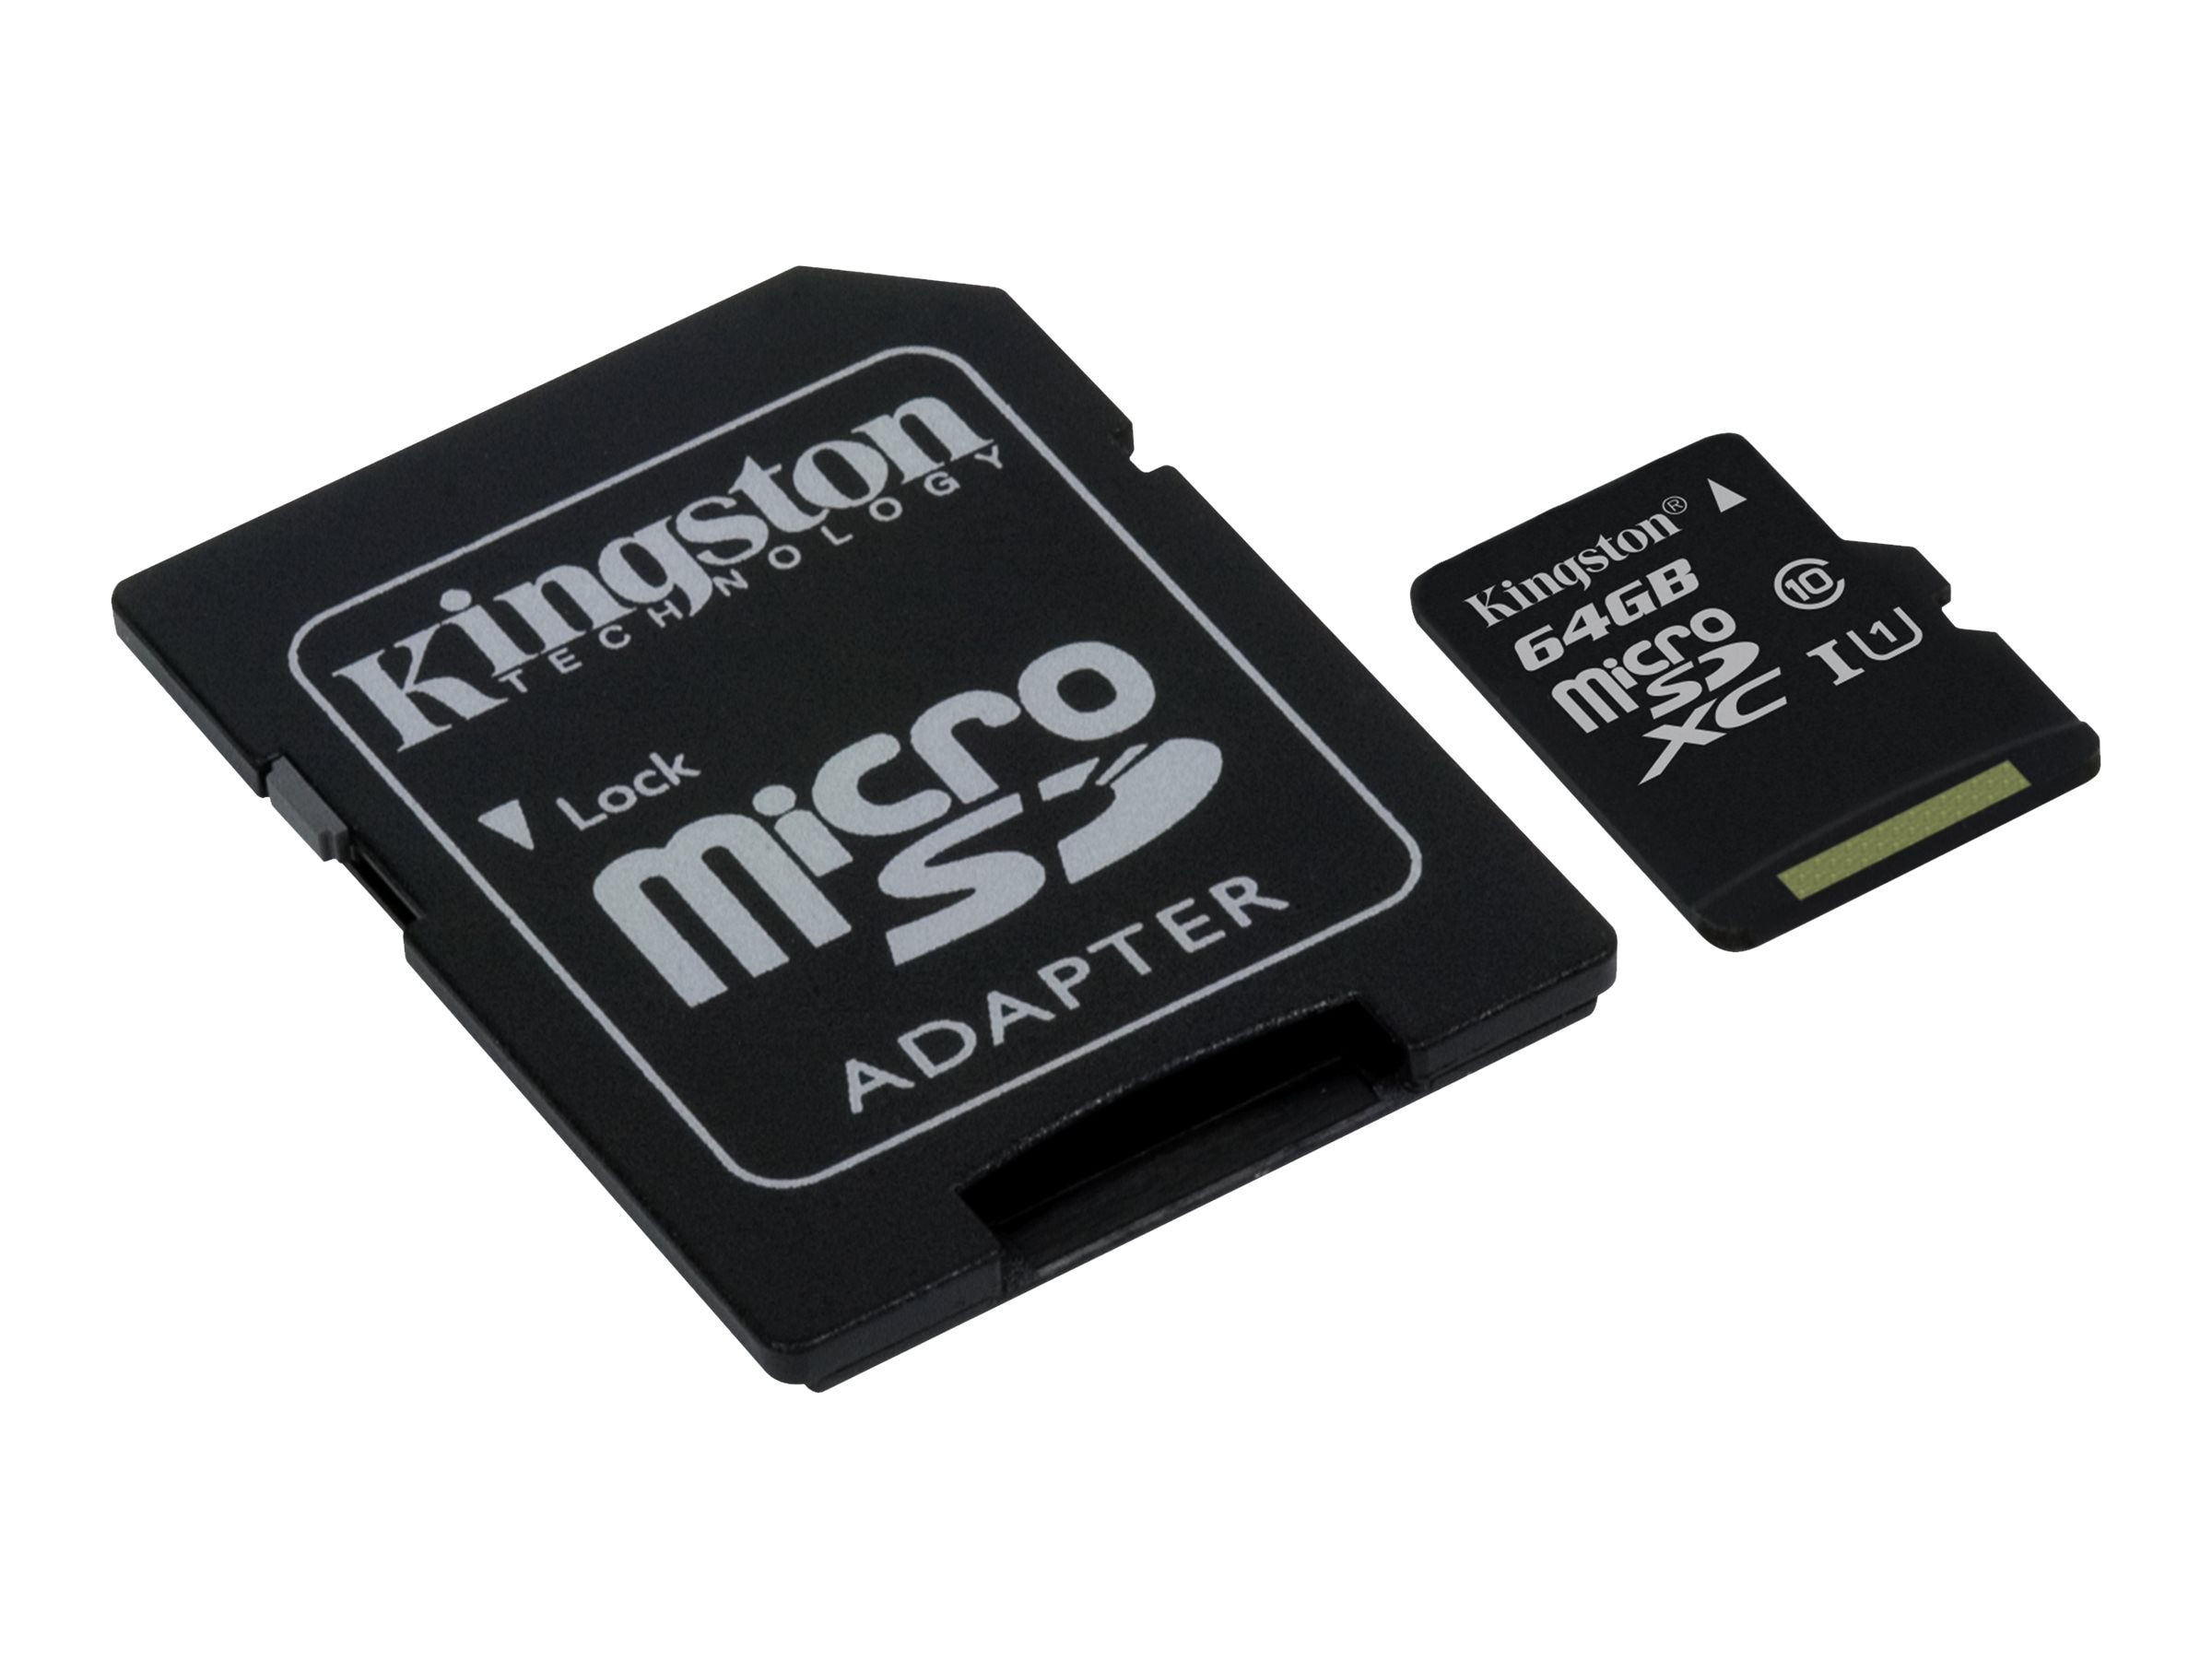 Kingston 64GB UHS-I microSDXC Flash Memory Card with SD Adapter, Class 10